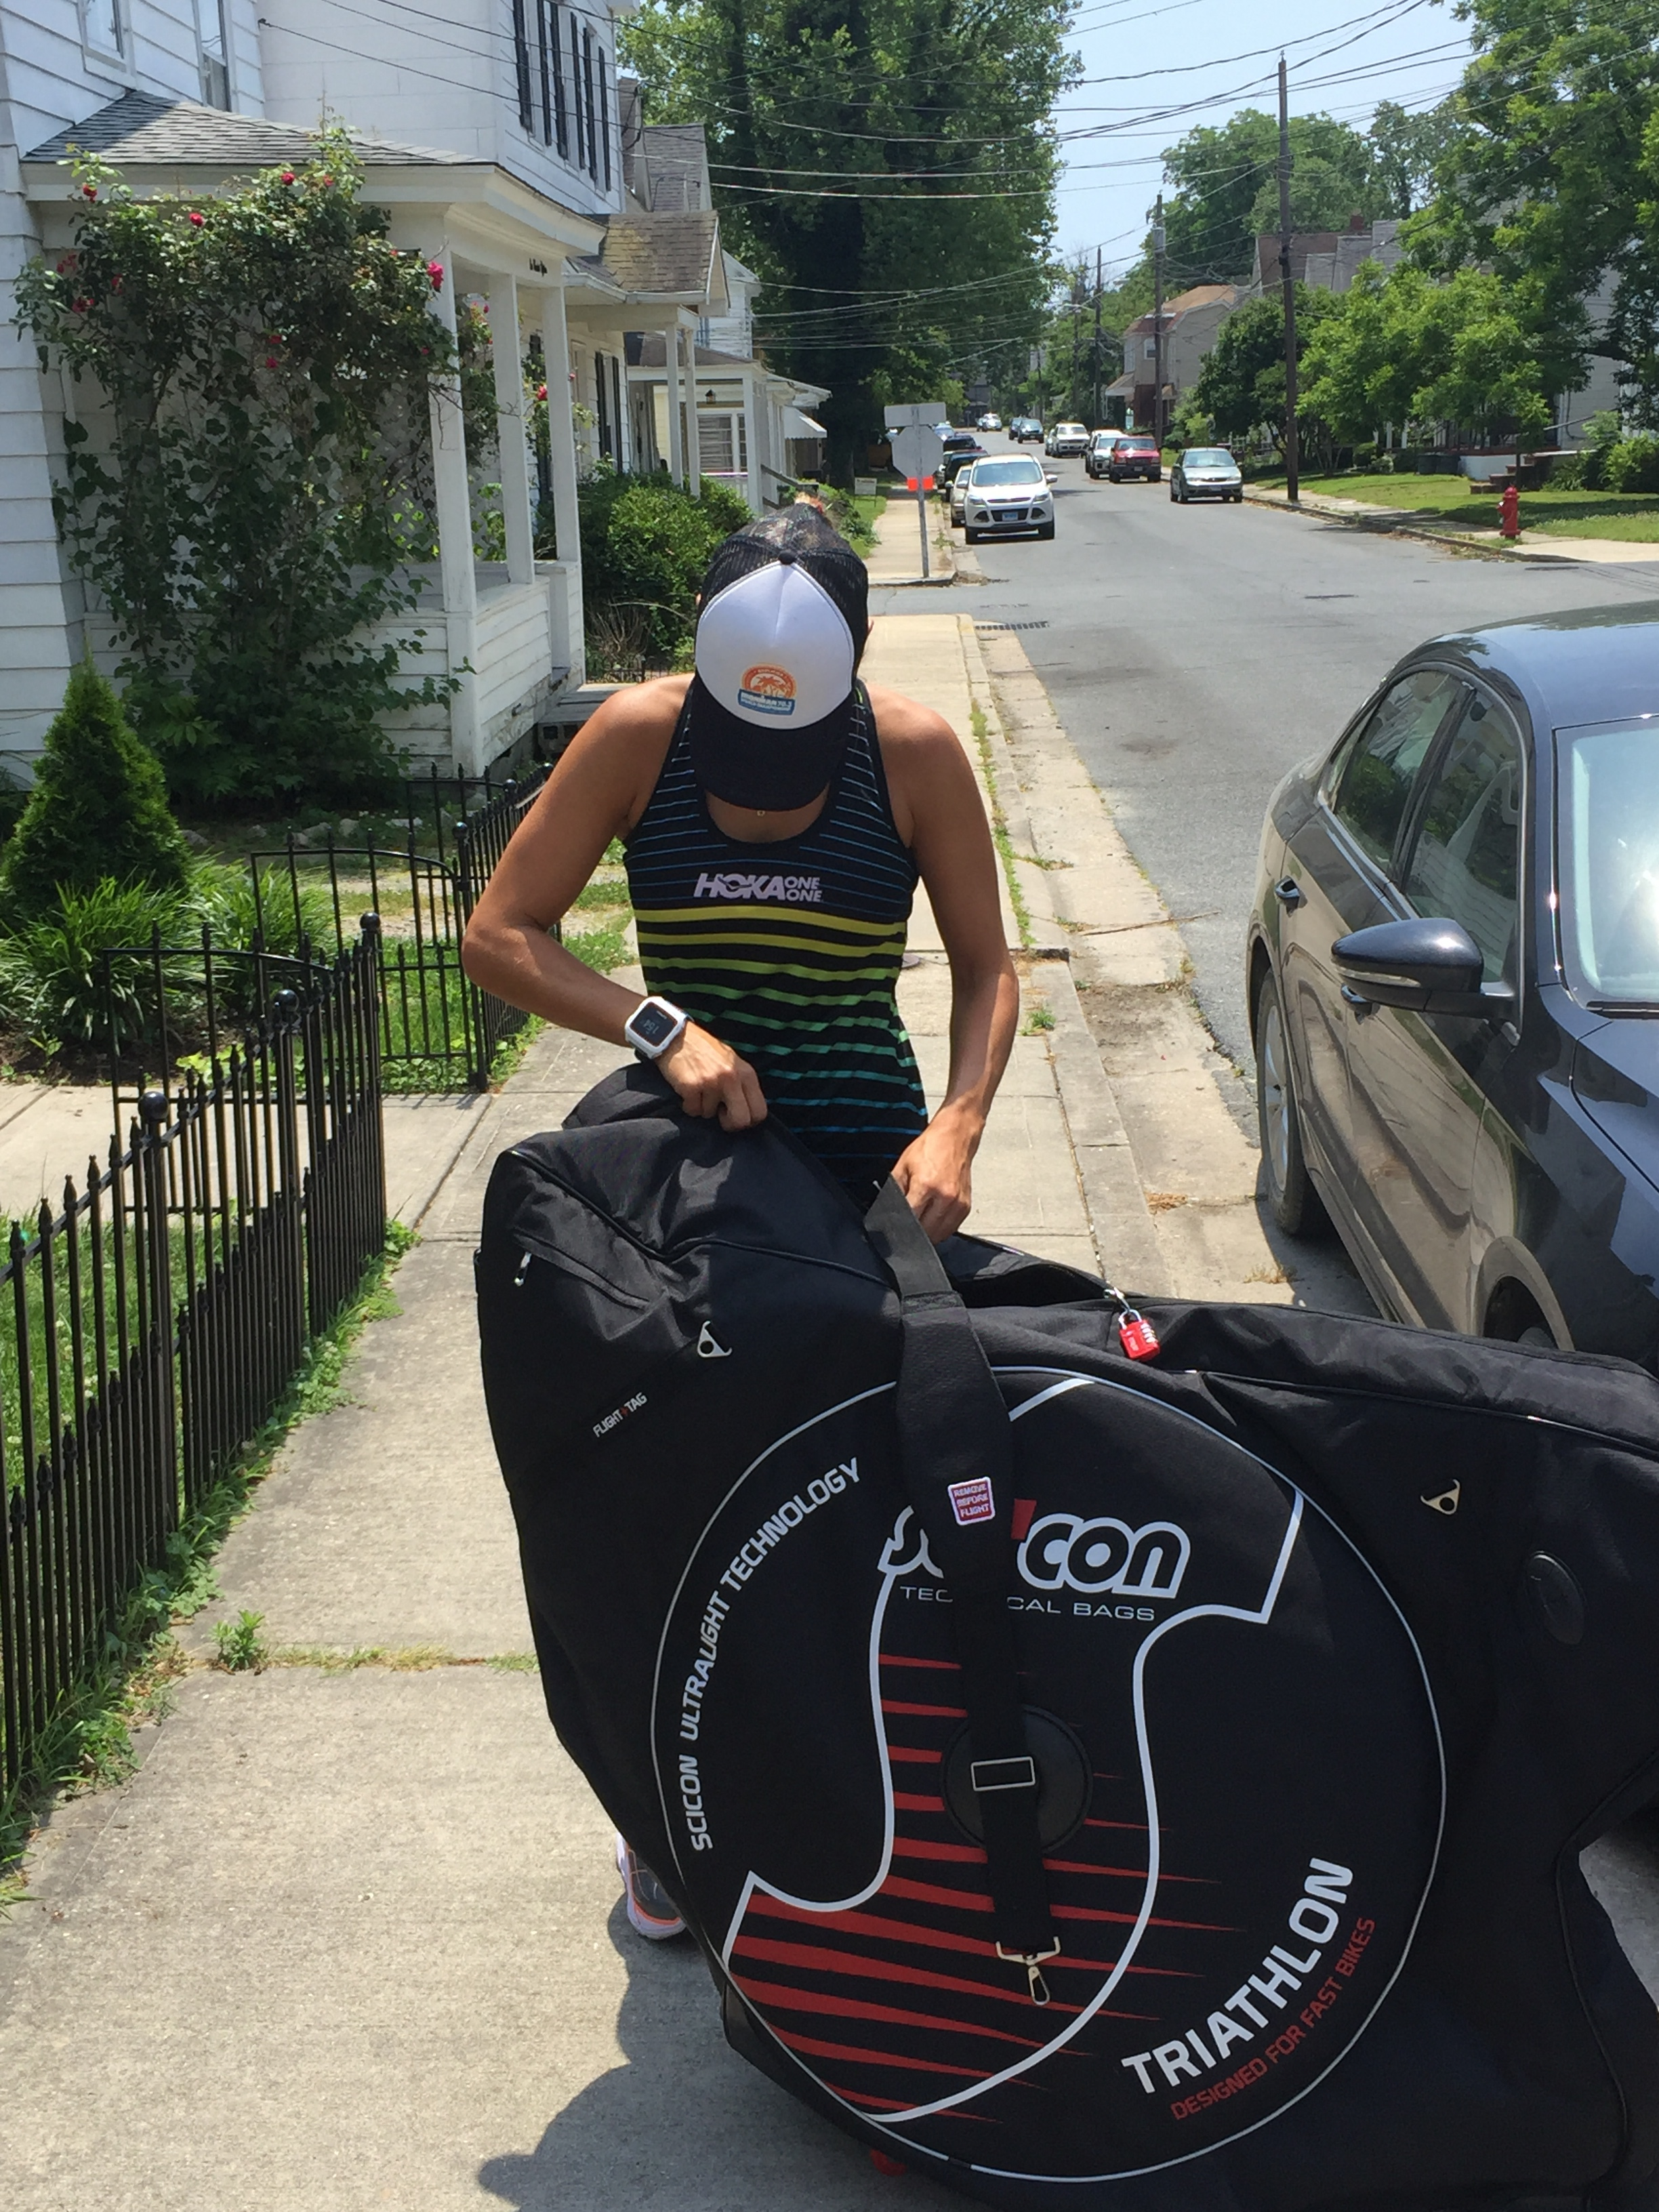 TRAVEL LIKE A PRO ! with the TSA 3.0 Triathlon bag, the Official Travel bag for 101Training athletes -